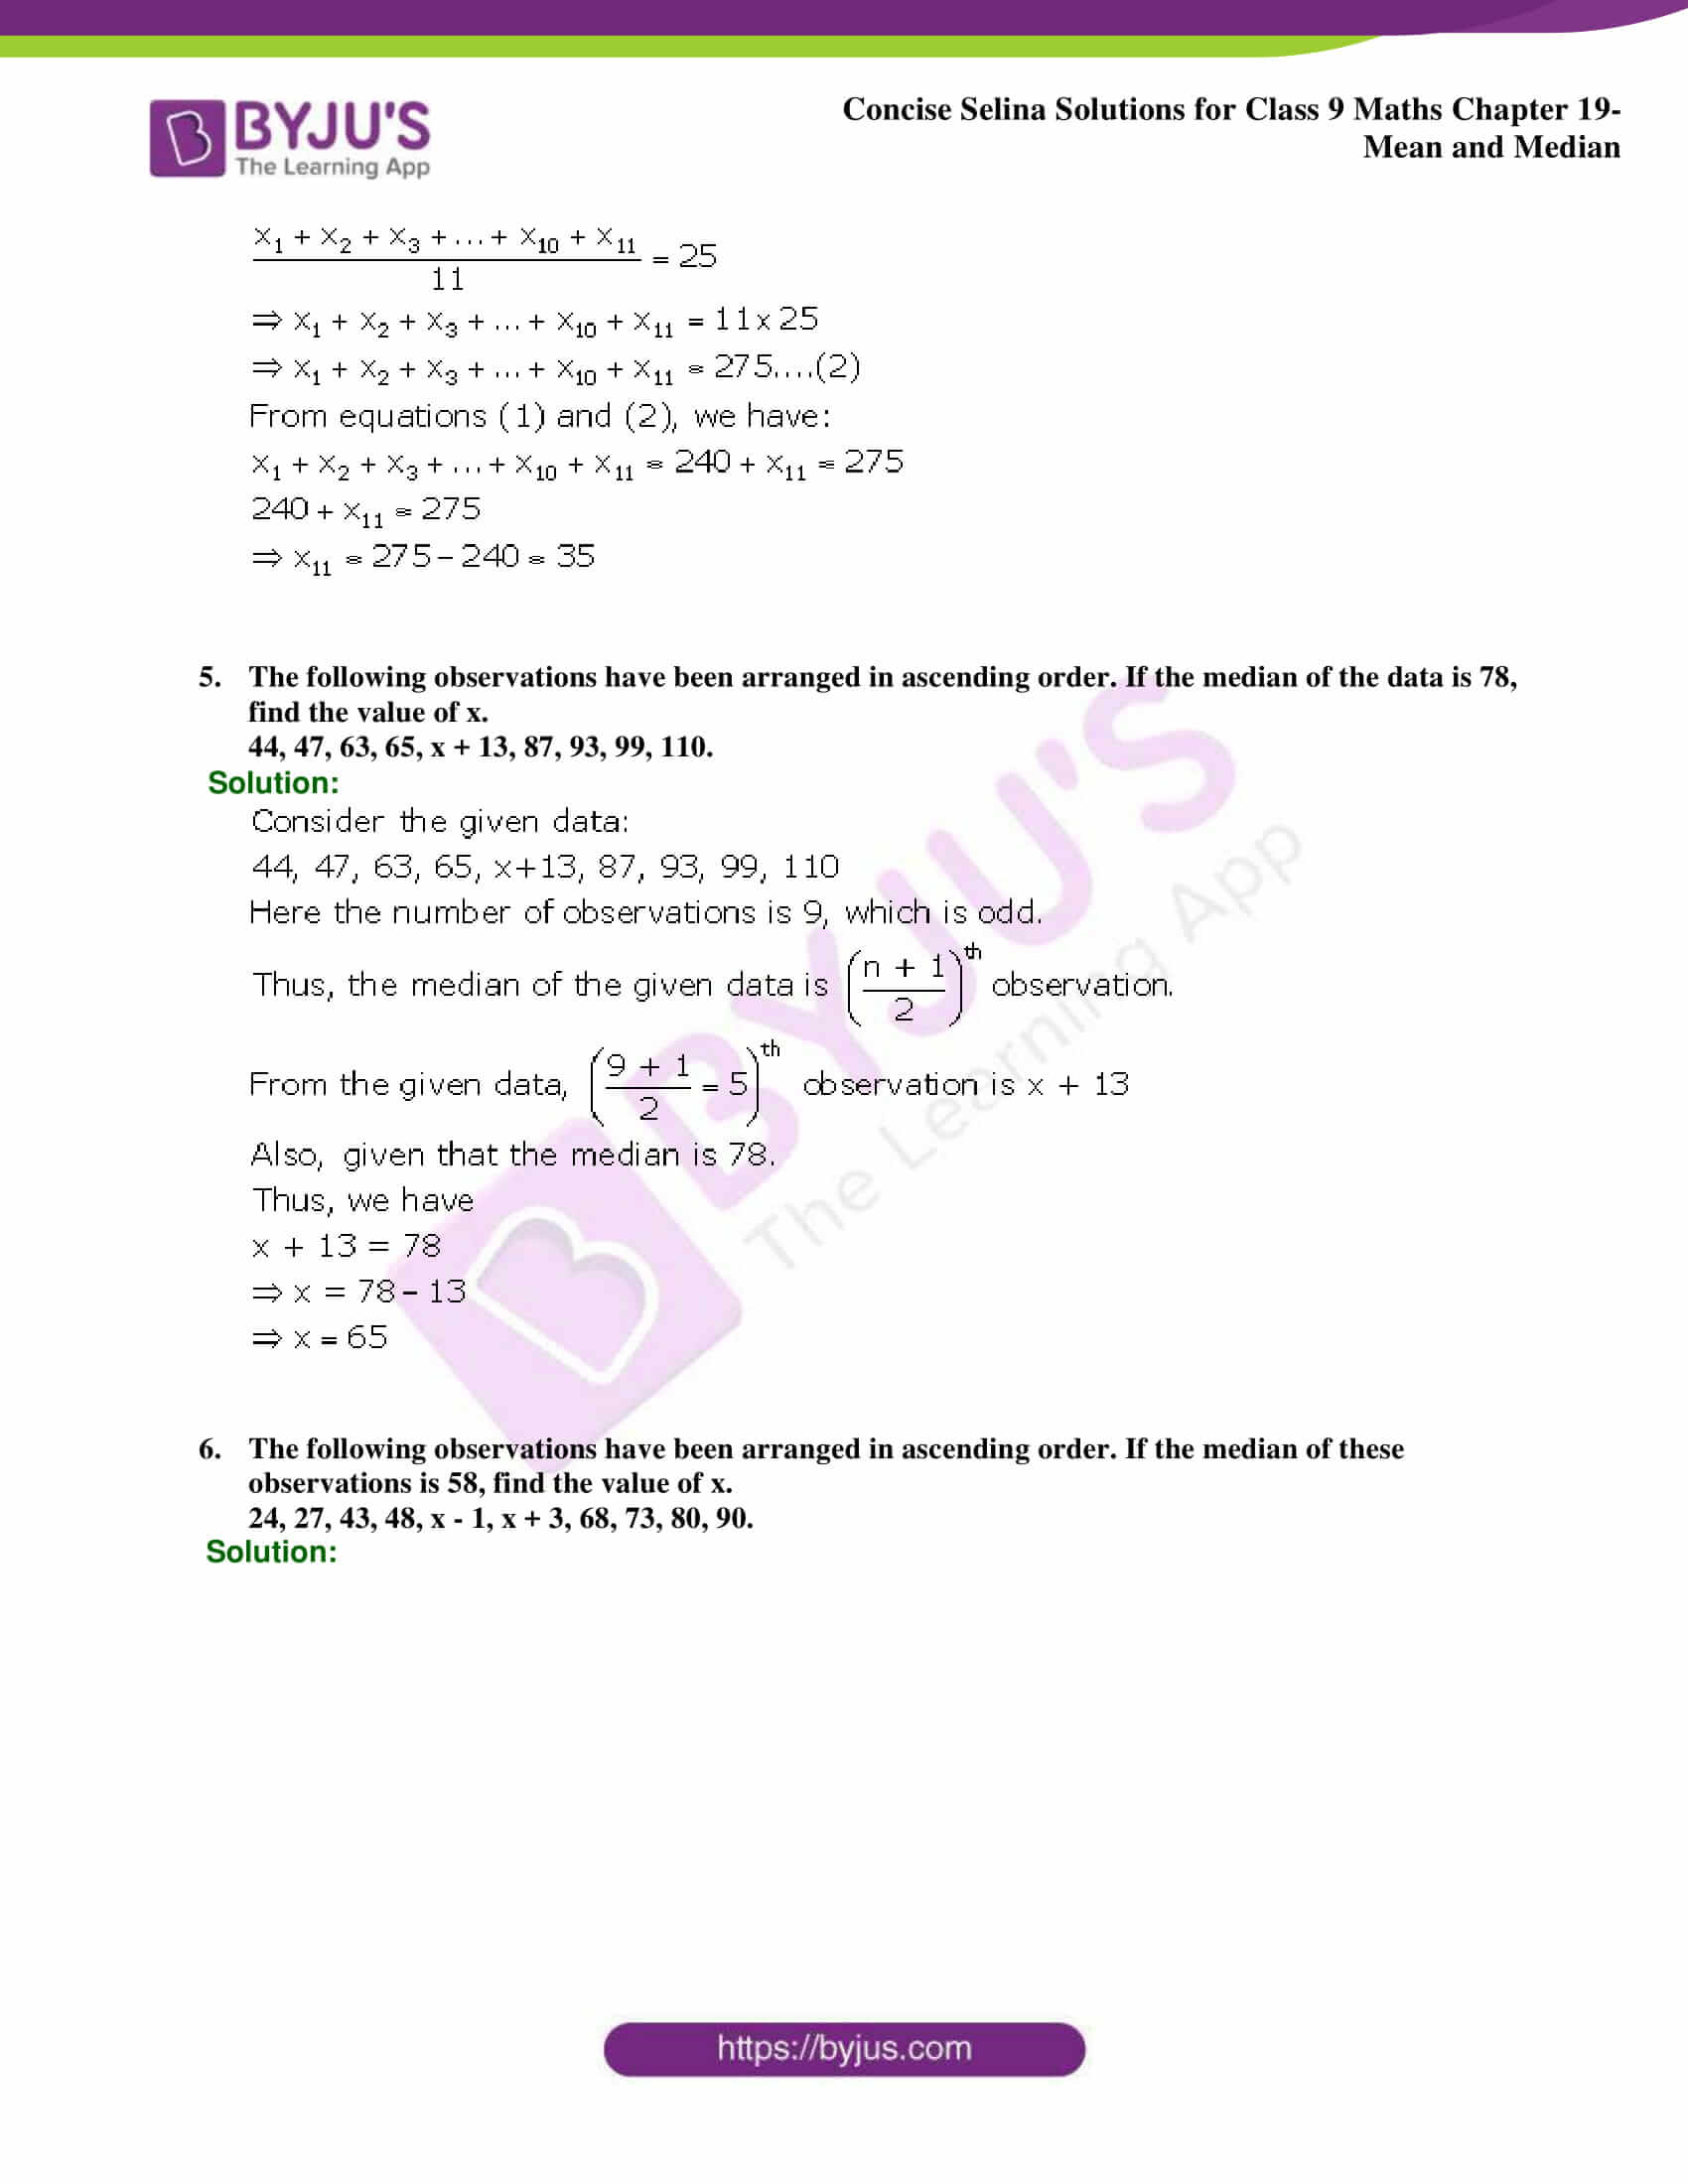 Concise Selina Solutions Class 9 Maths Chapter 19 Mean and Median part 16